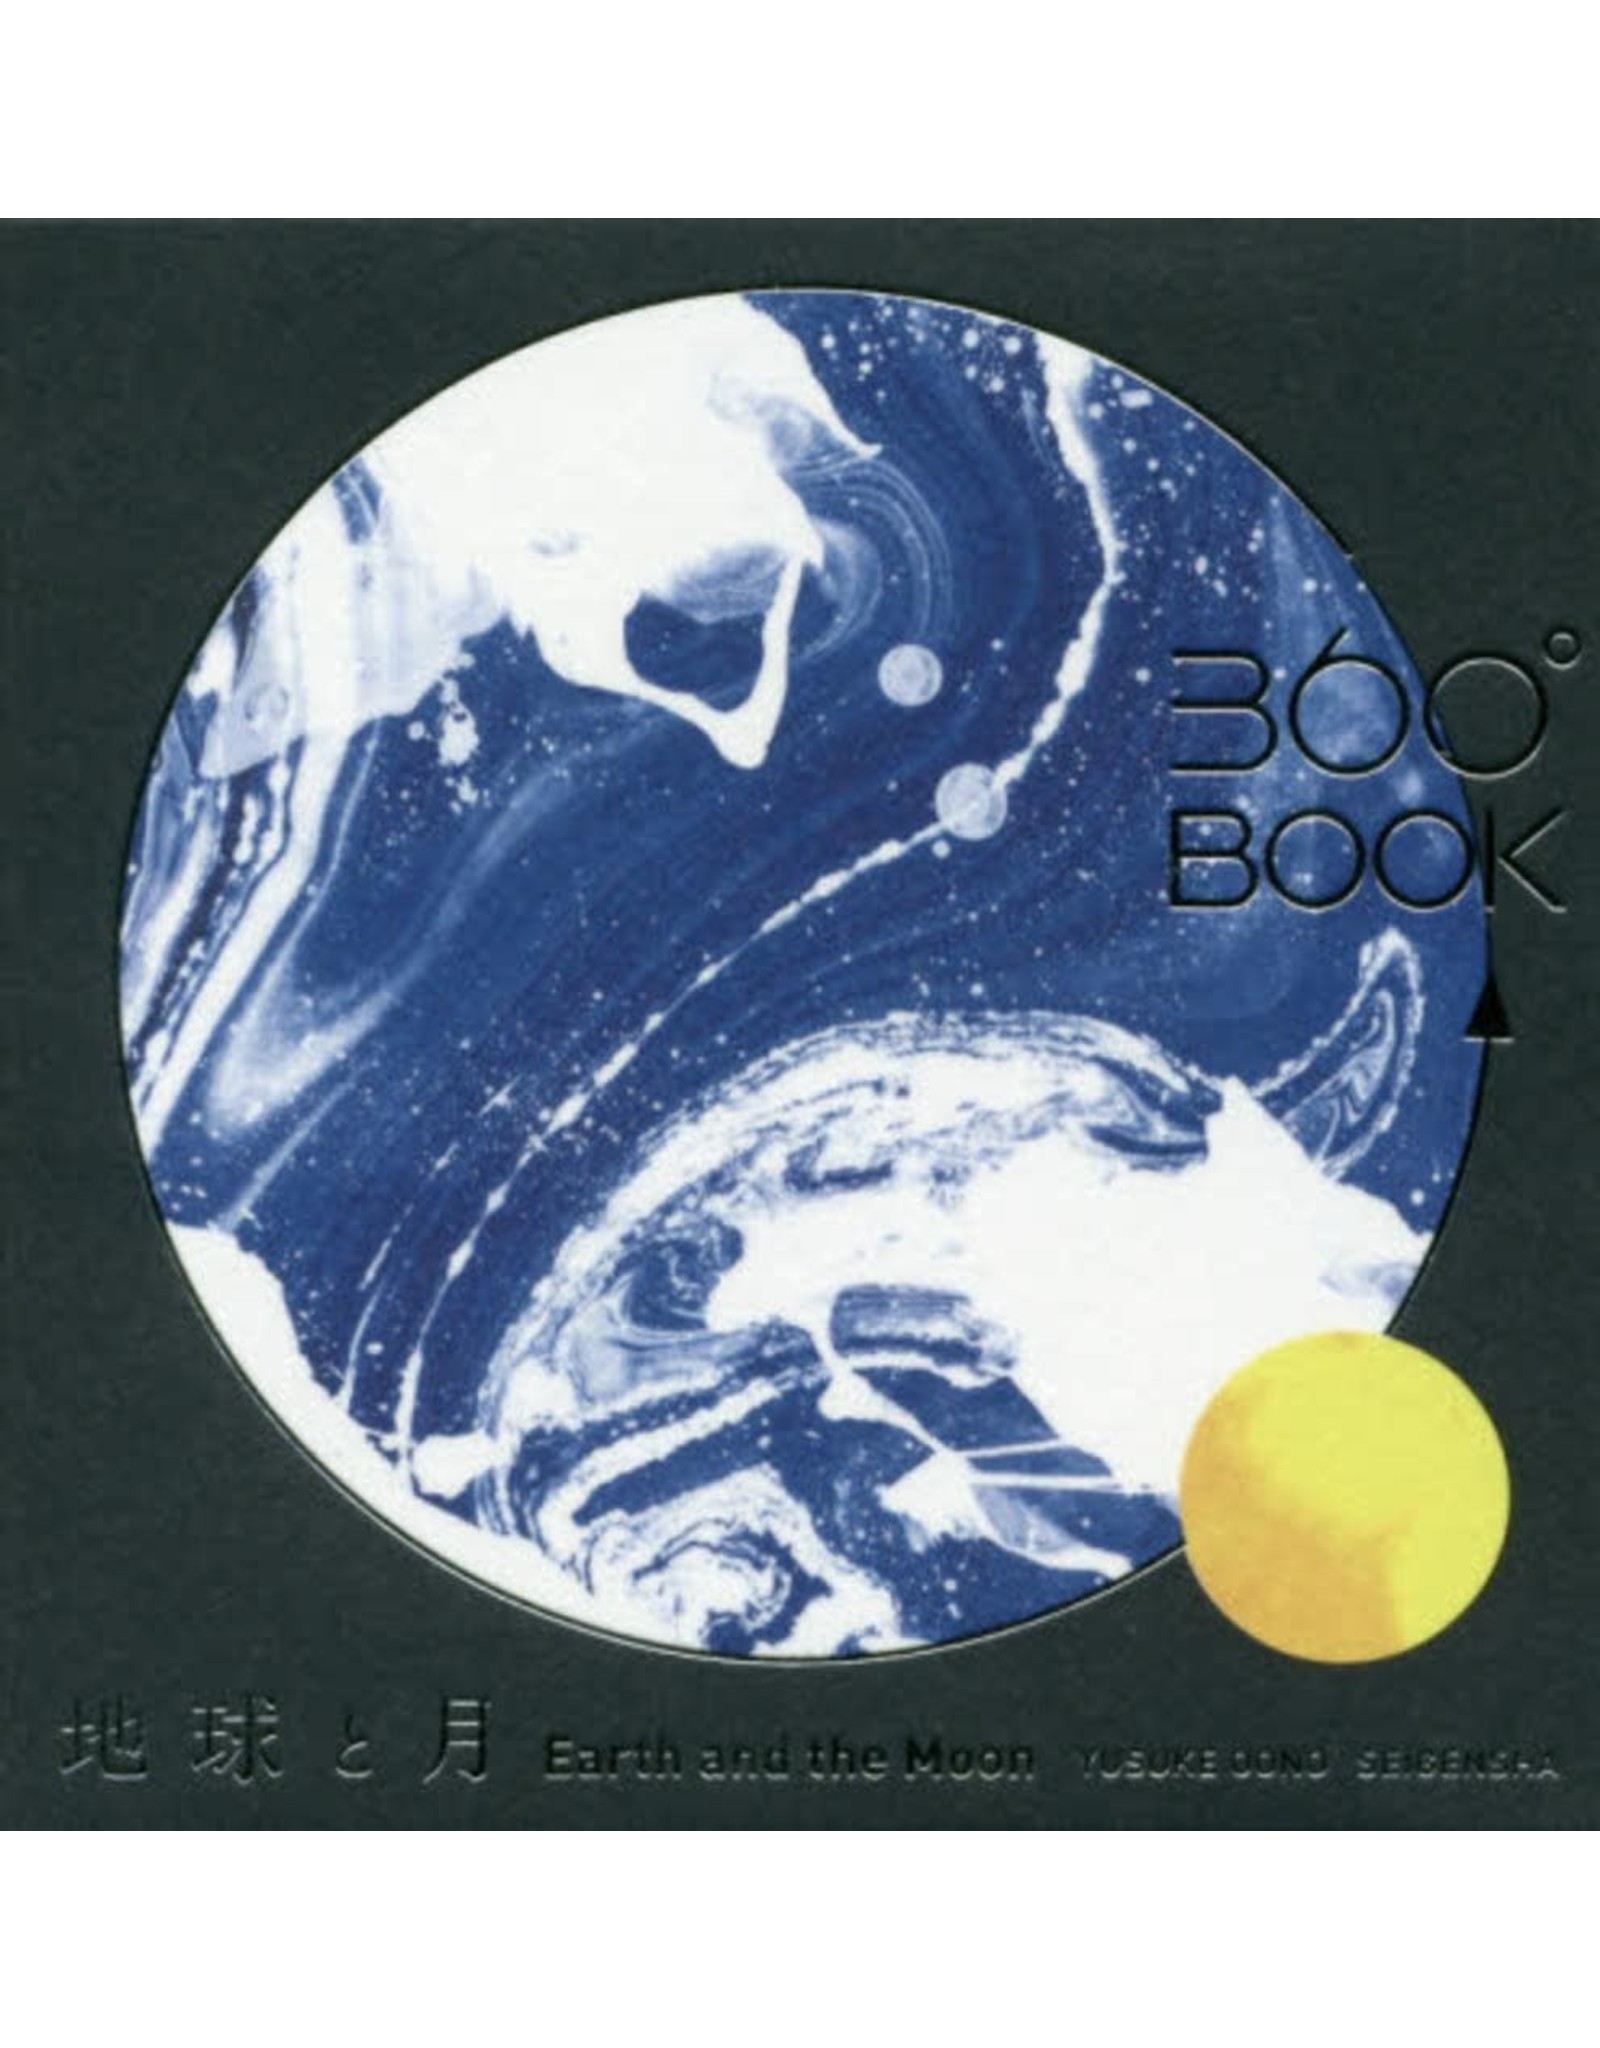 SEIGENSHA 360°BOOK EARTH AND THE MOON